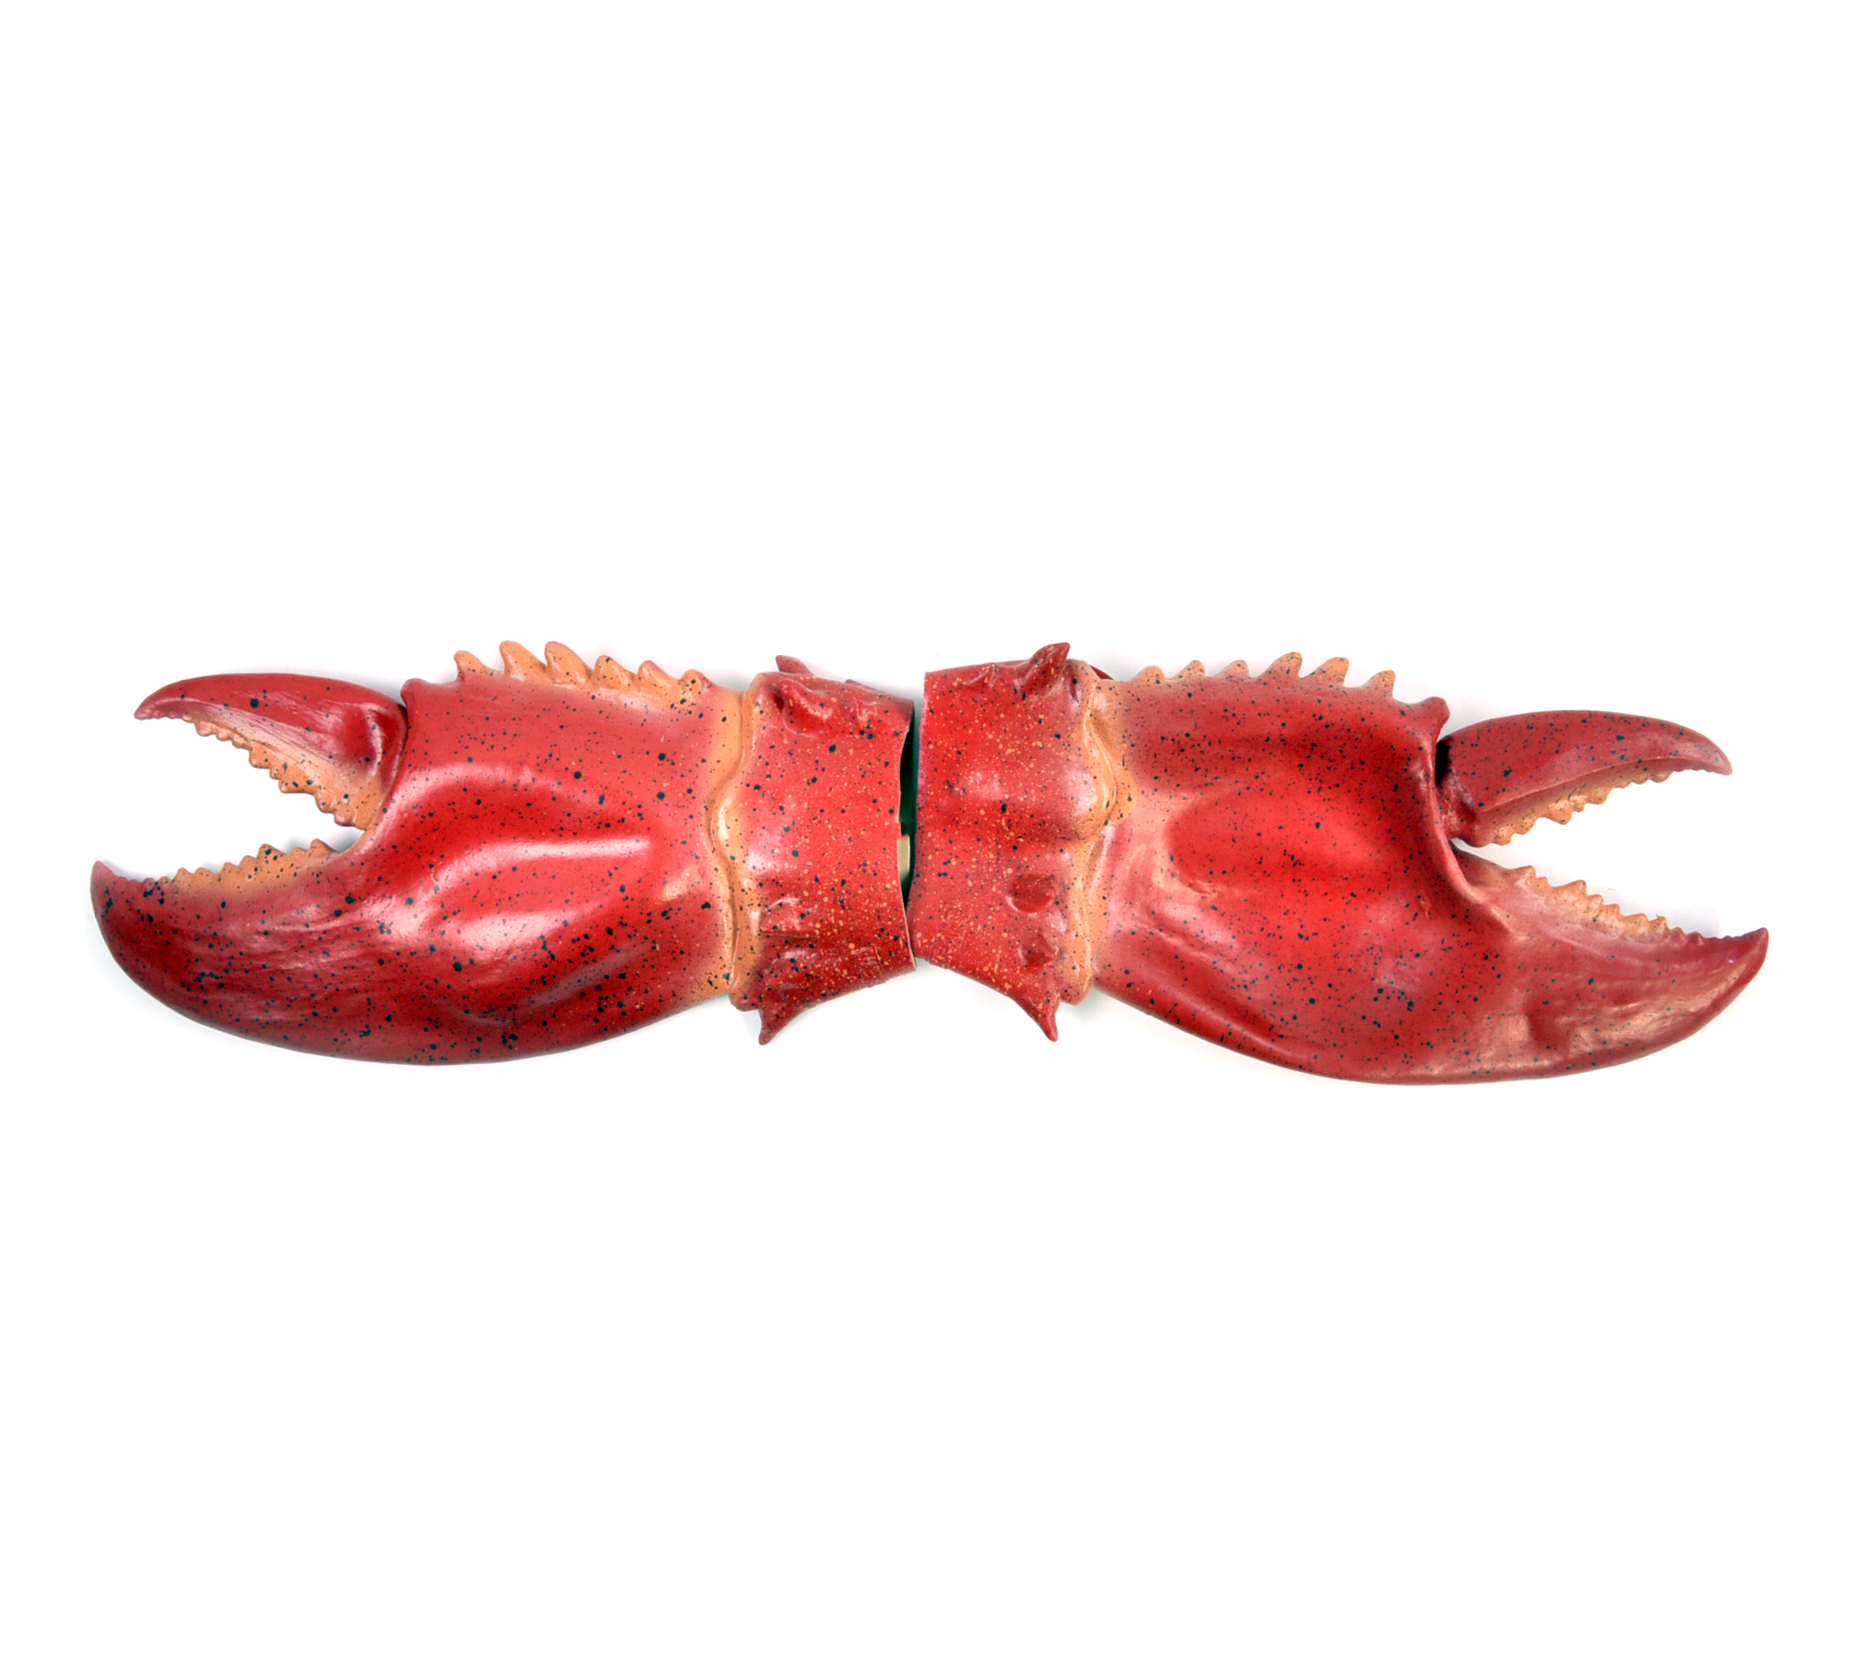 Giant Lobster Claws Ebay